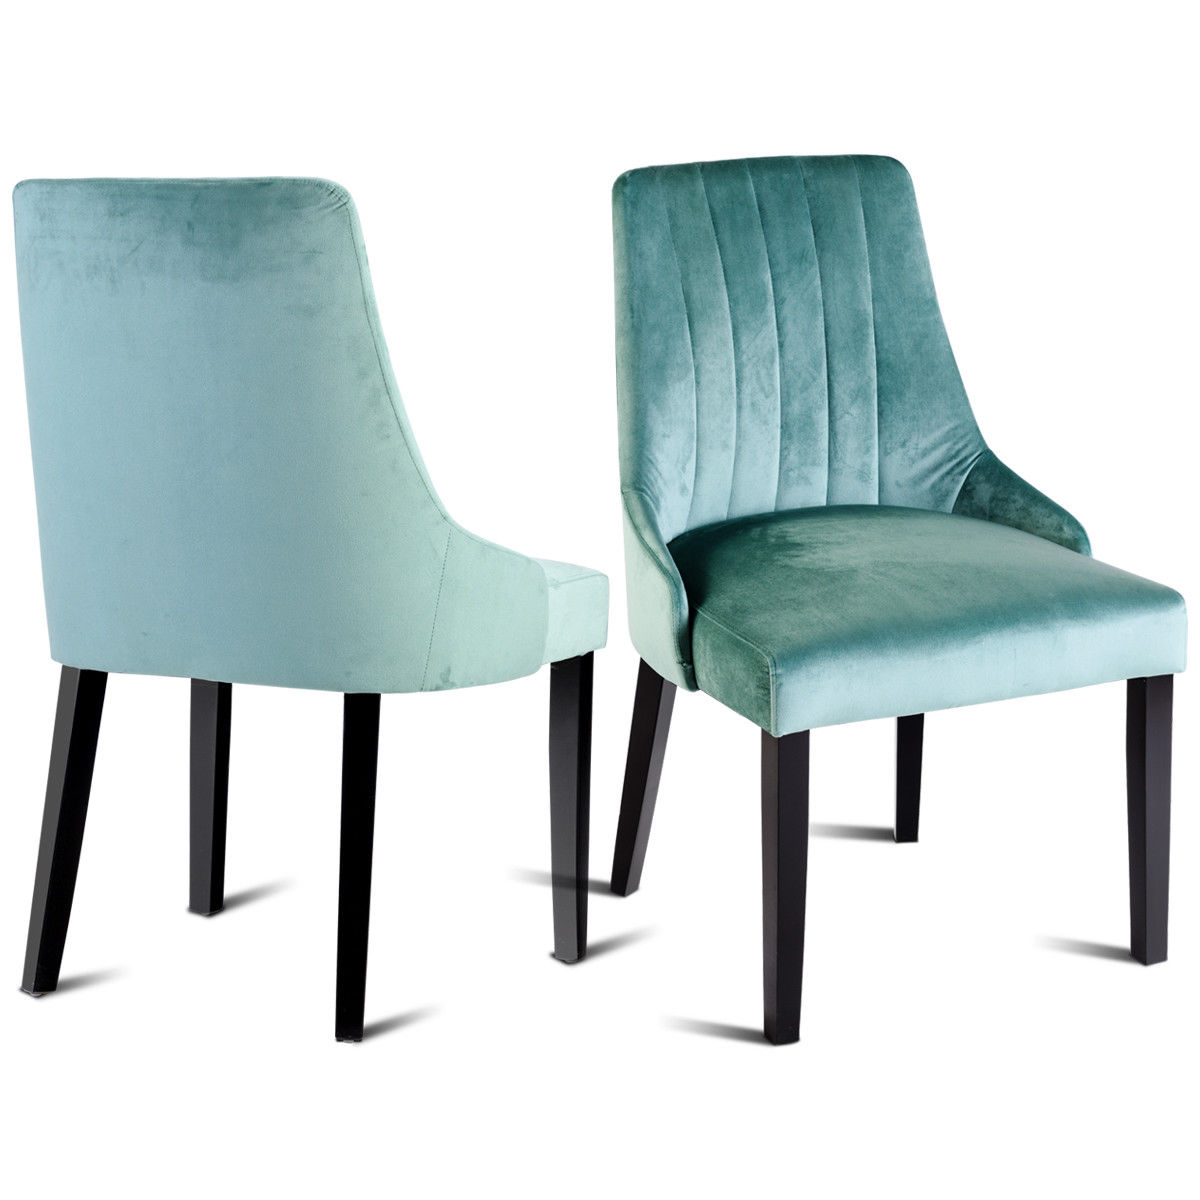 Gymax Set of 2 Dining Chair Leisure Padded Accent Chair with Solid Wood Legs Green